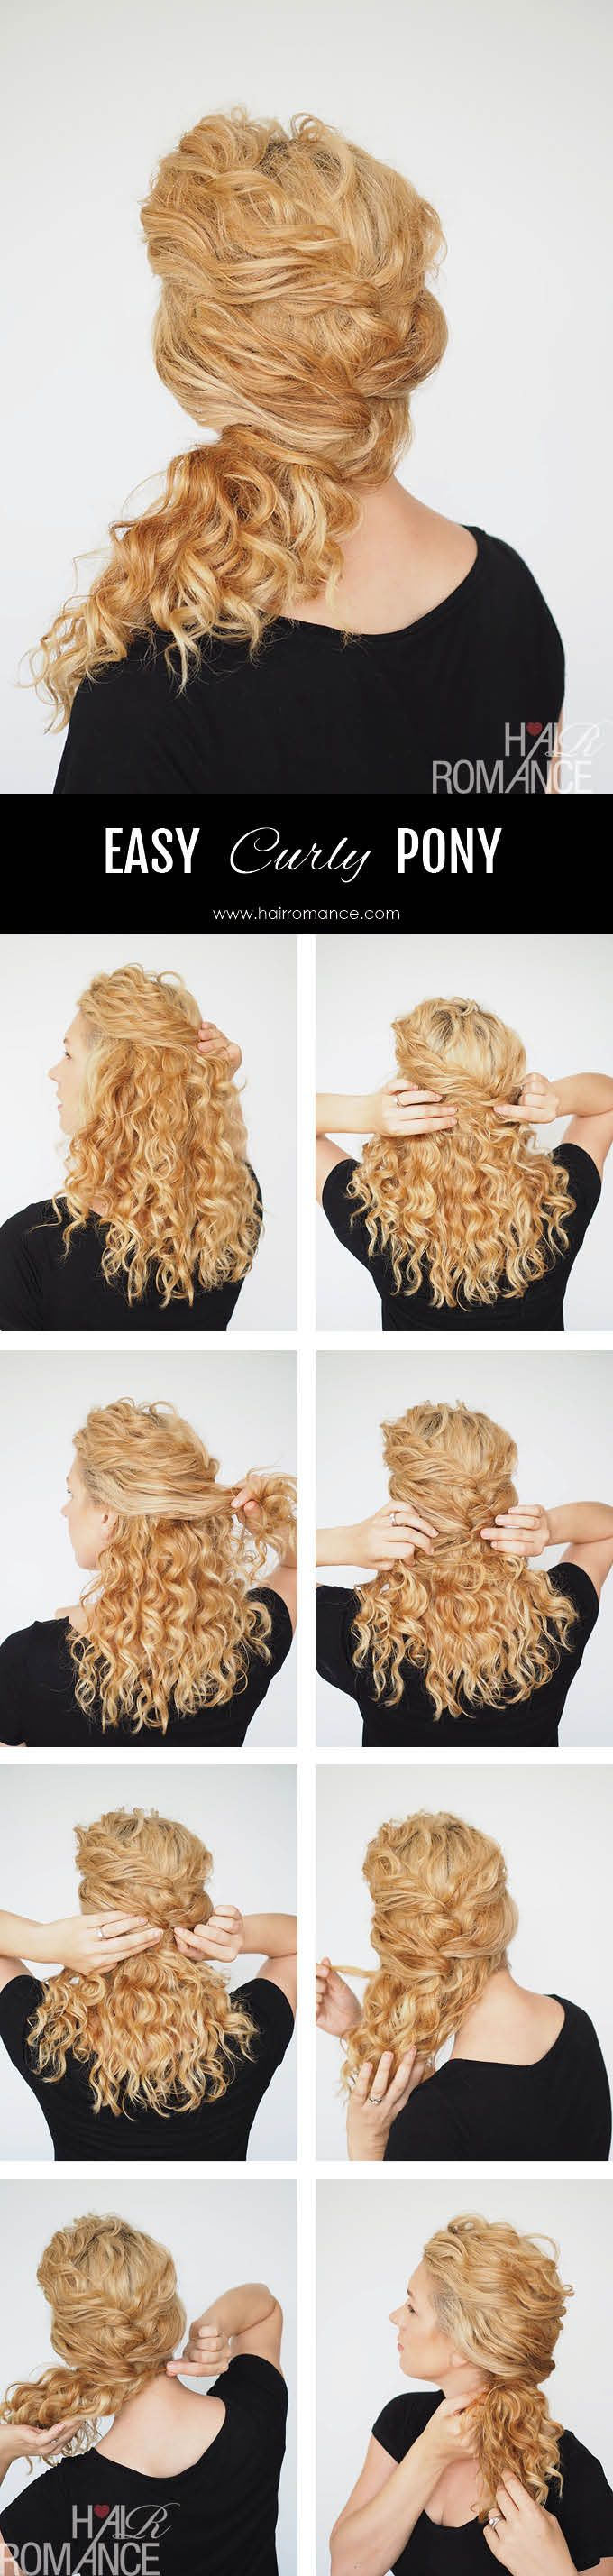 best messy curly hair images on pinterest curly hair natural